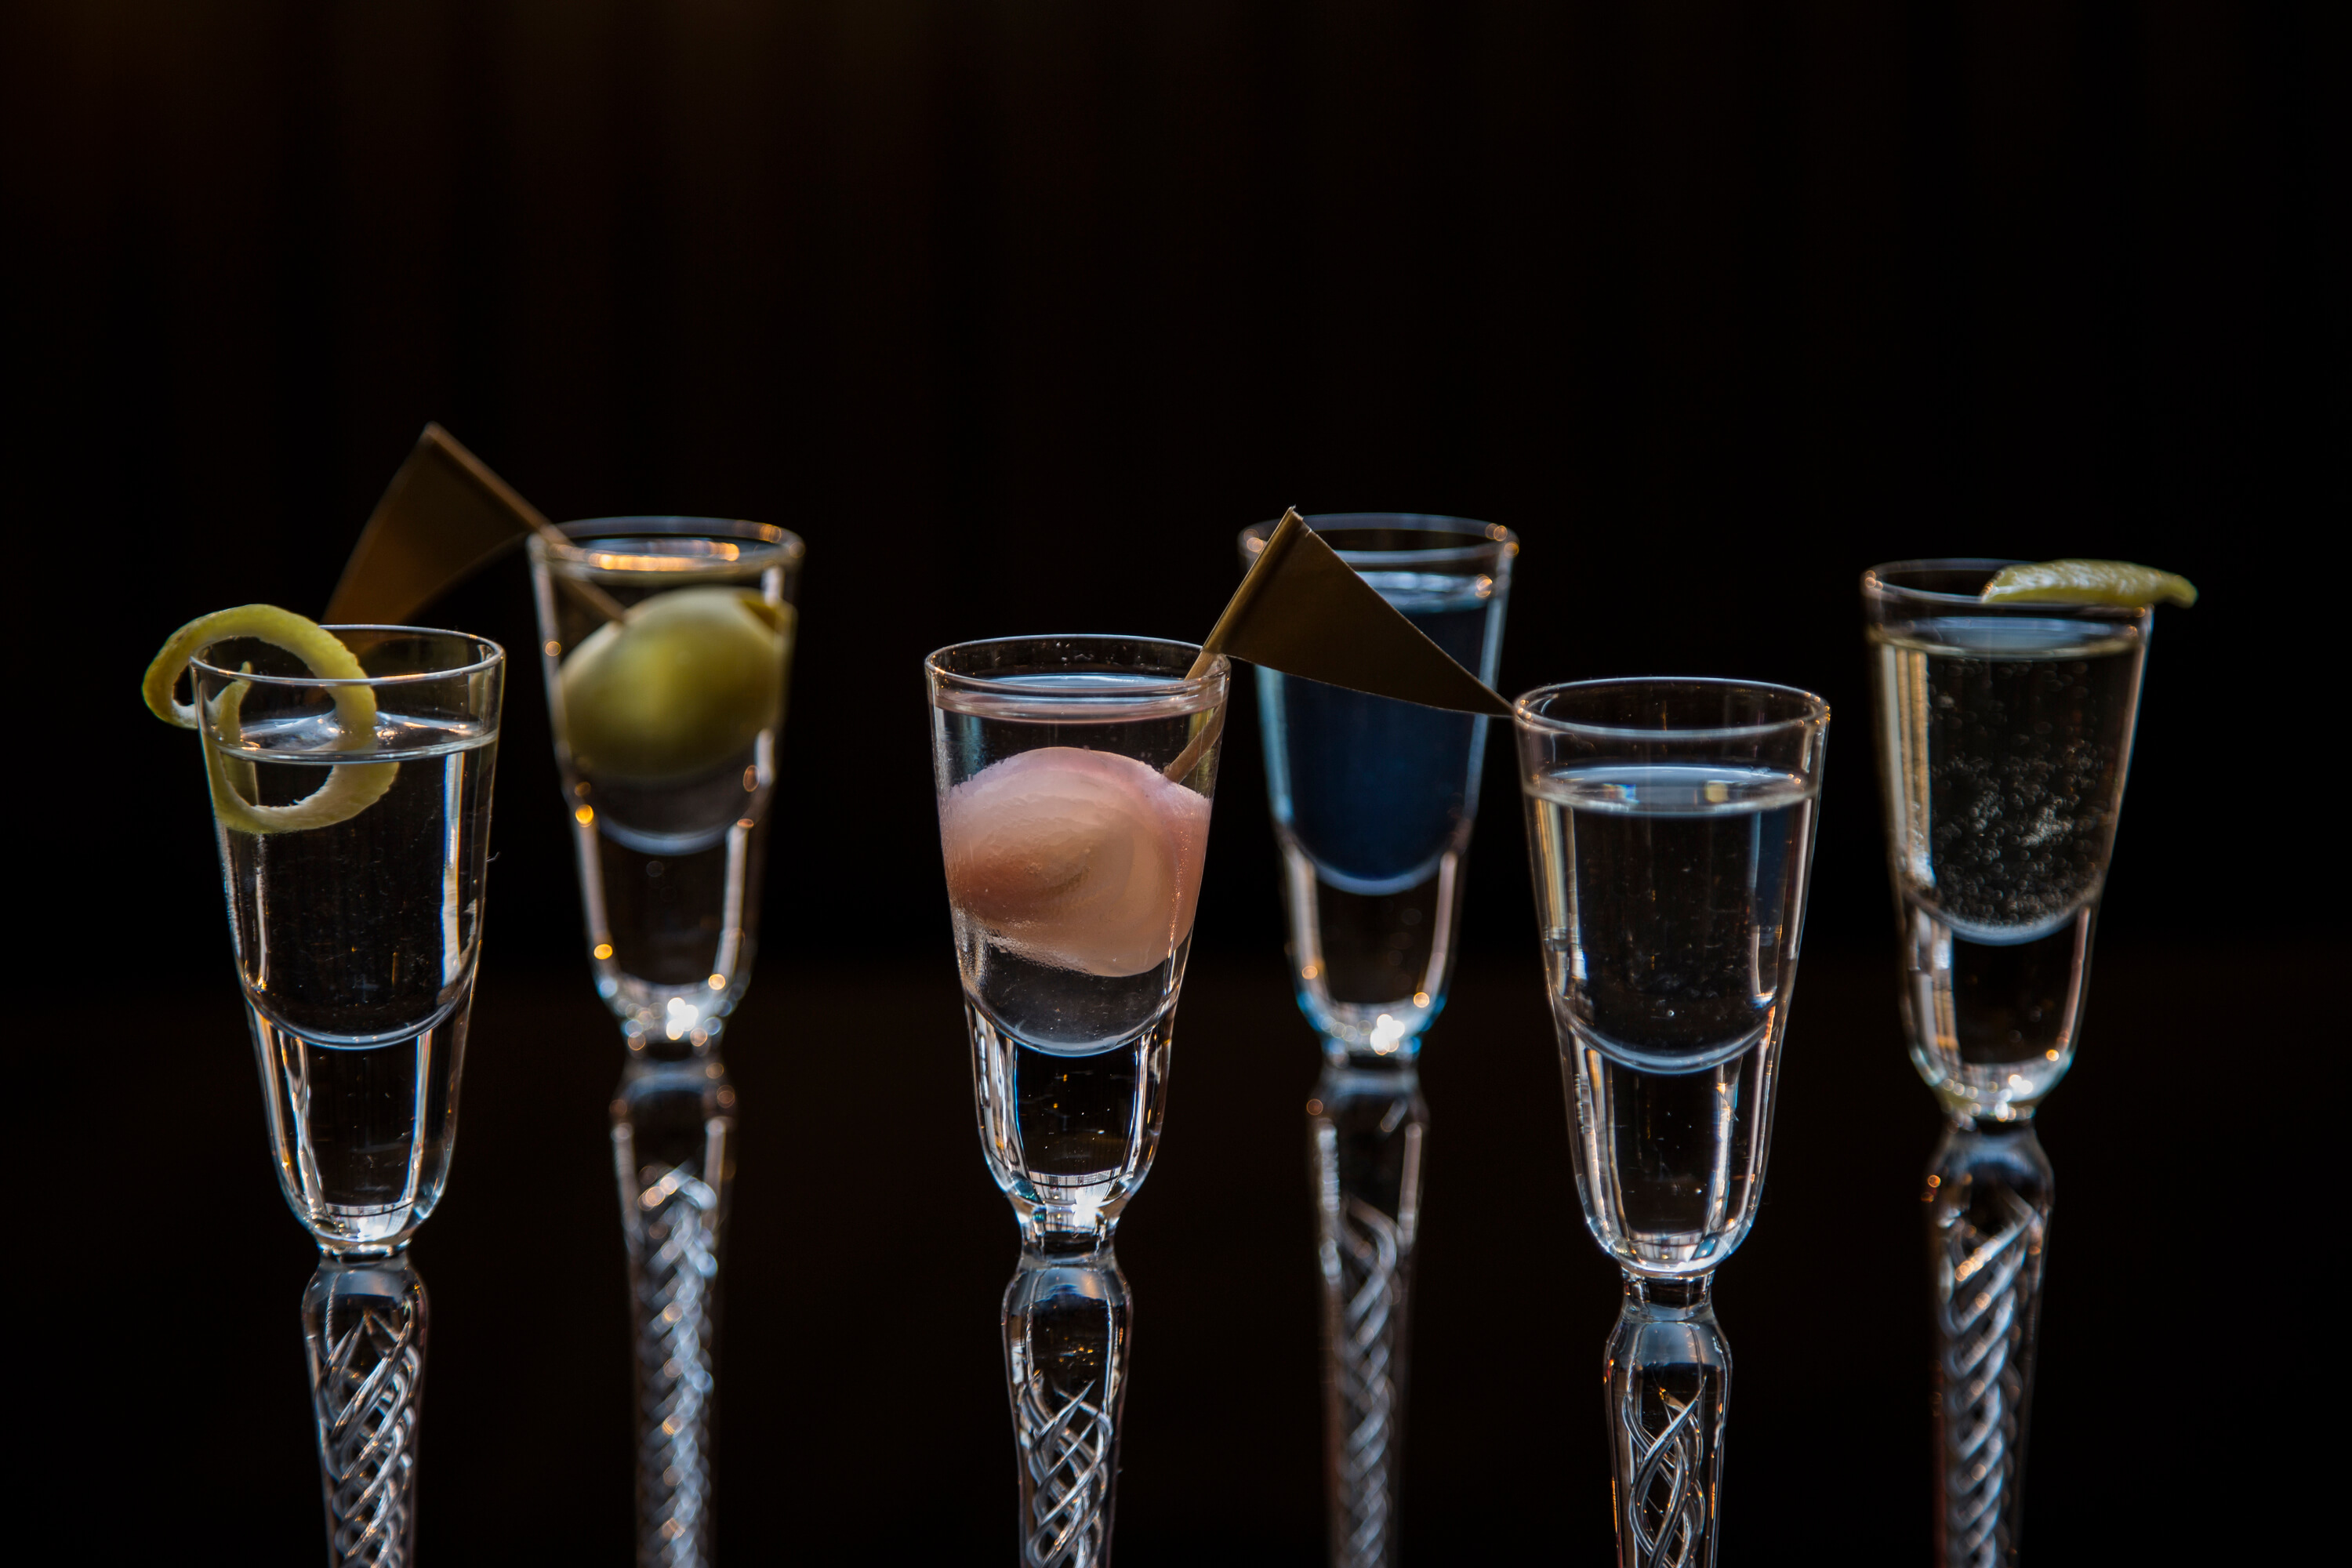 Tuxedo Martini and 6 mini Martini flight courtesy of Jess Lambert from Vol. 39 - National Martini Day 2017 cocktail recipes